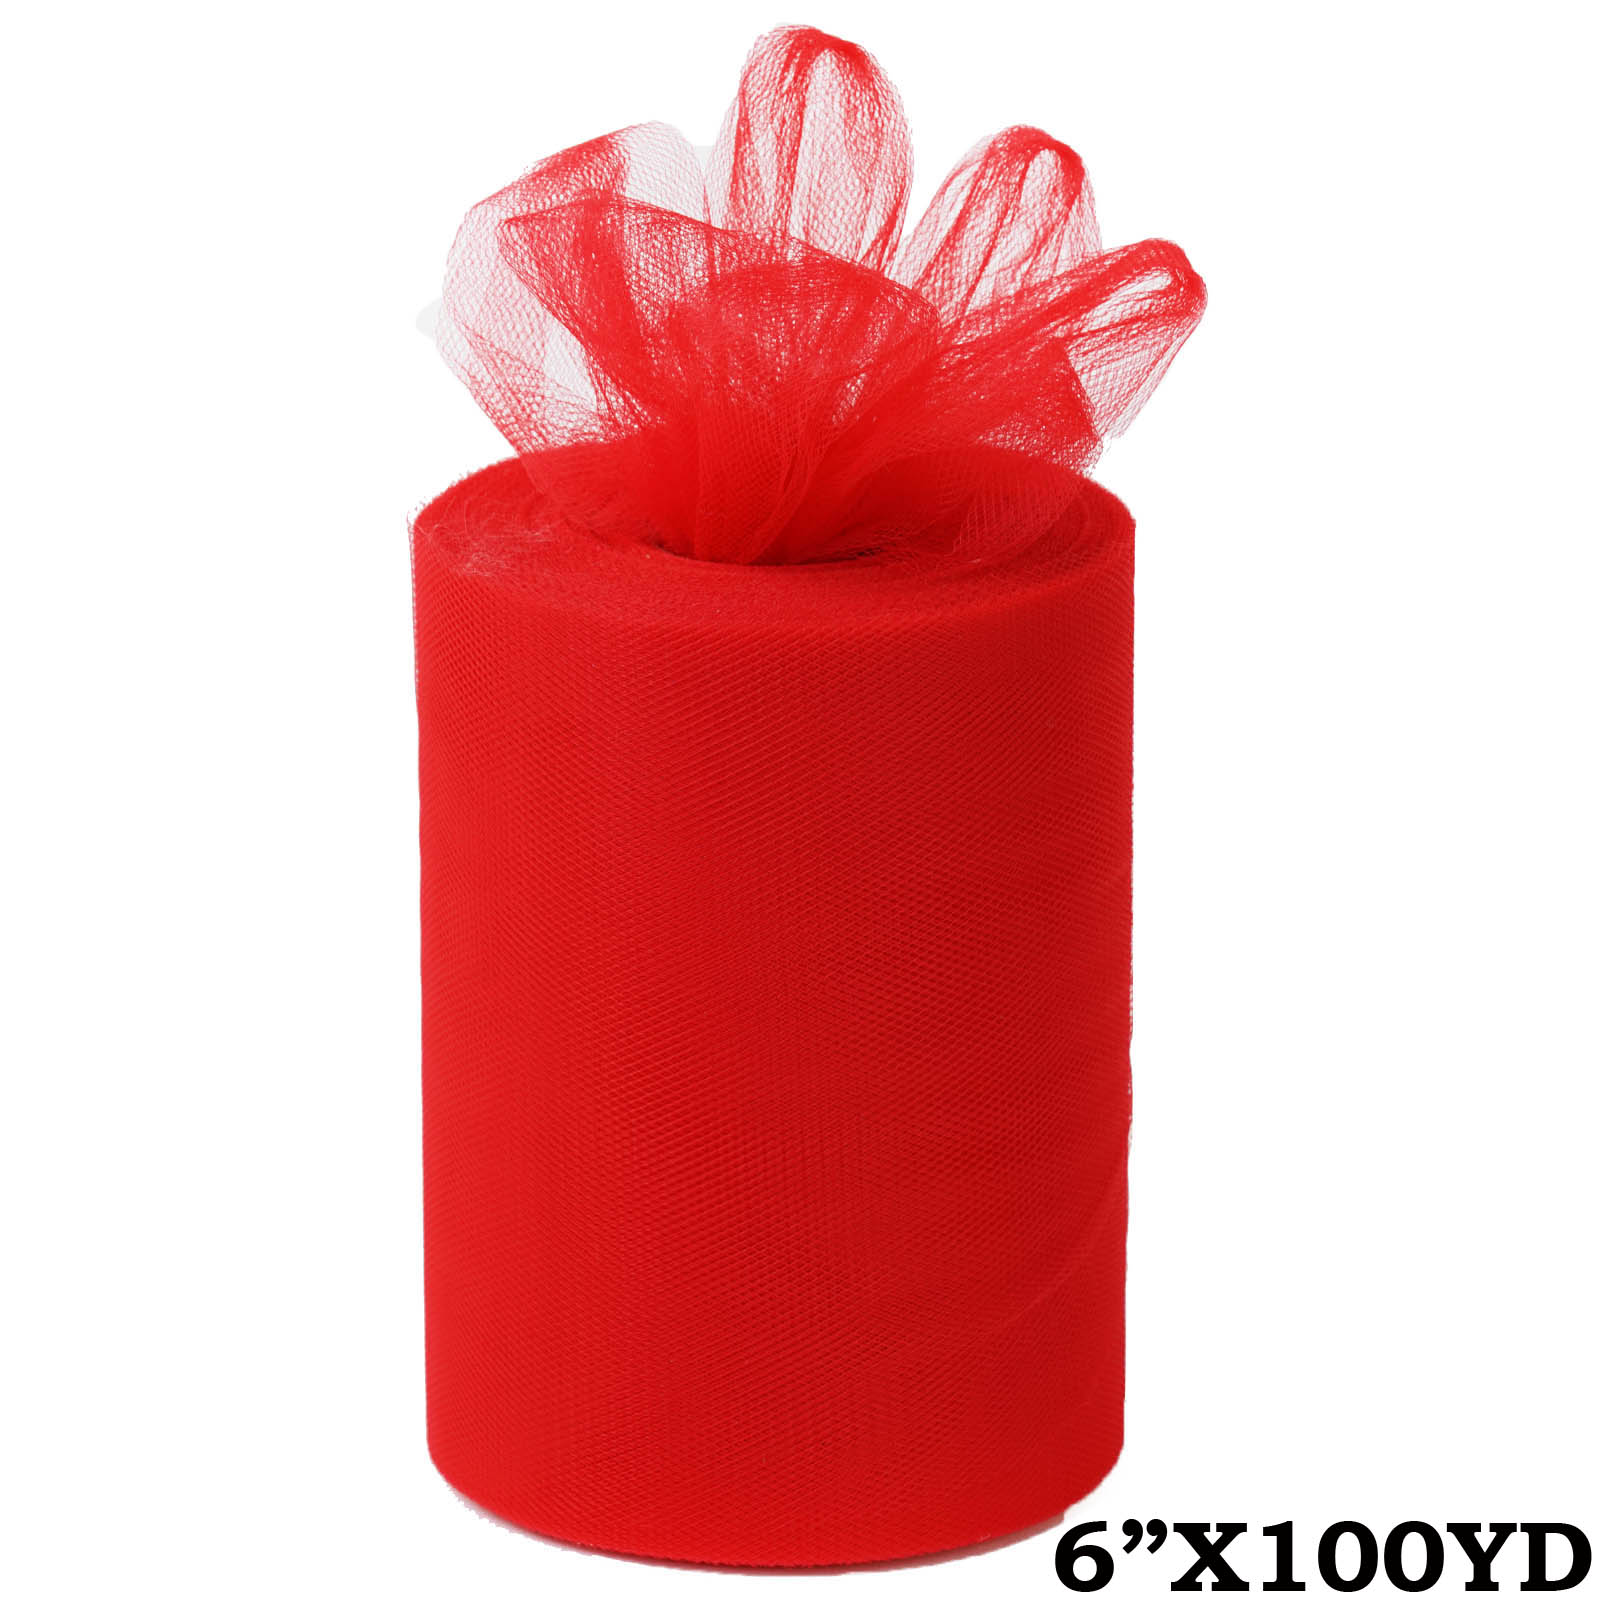 "6"" x 300 feet Wedding Tulle Roll For Crafting Favors Decor - Red"